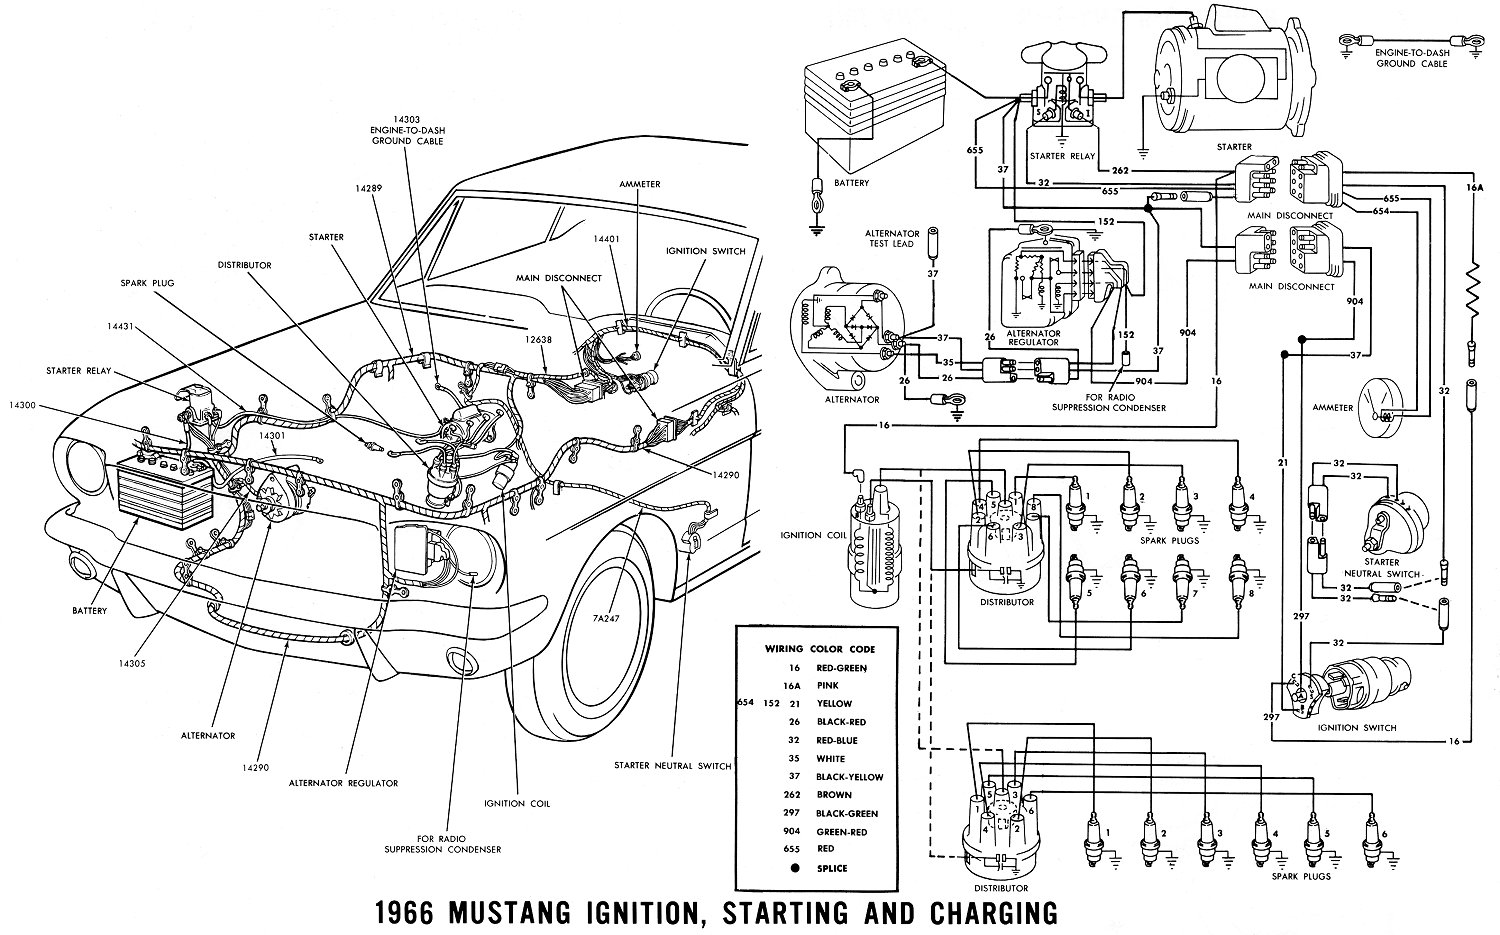 66ignit vintage mustang wiring diagrams 1972 mustang wiring schematic at bakdesigns.co